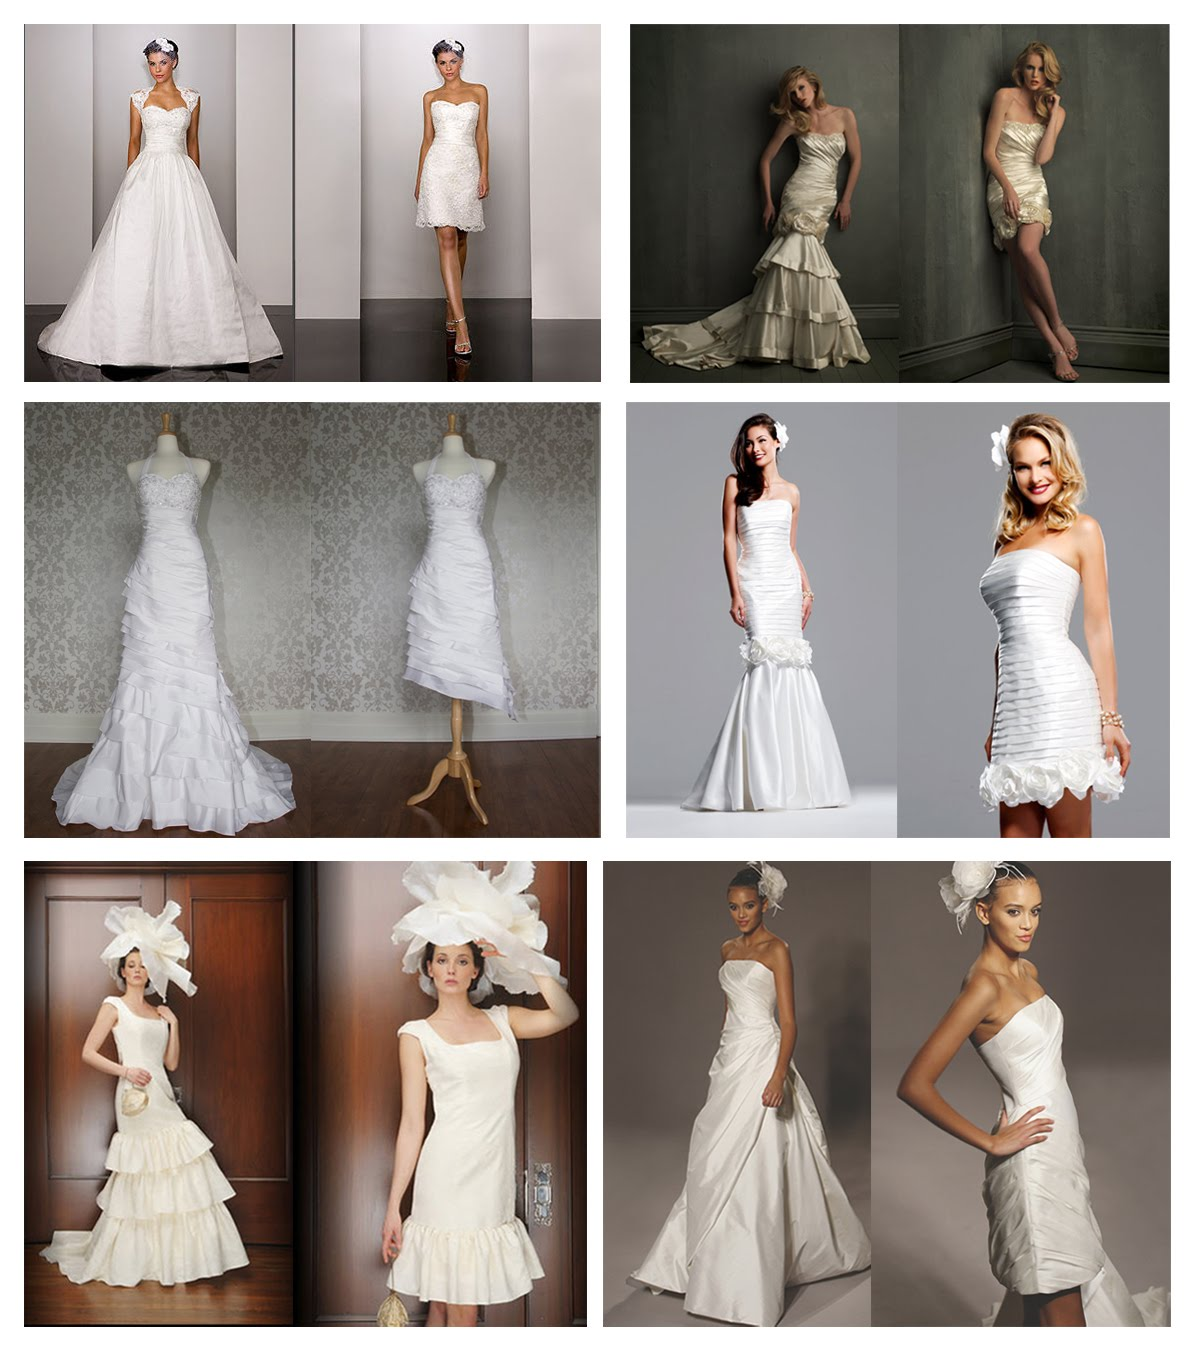 Brideindream convertible wedding dresses a good choice for you now with a breakaway skirt wedding dresses convertible can meet your needs in fact convertible wedding dress is a mixture of short and full length junglespirit Image collections